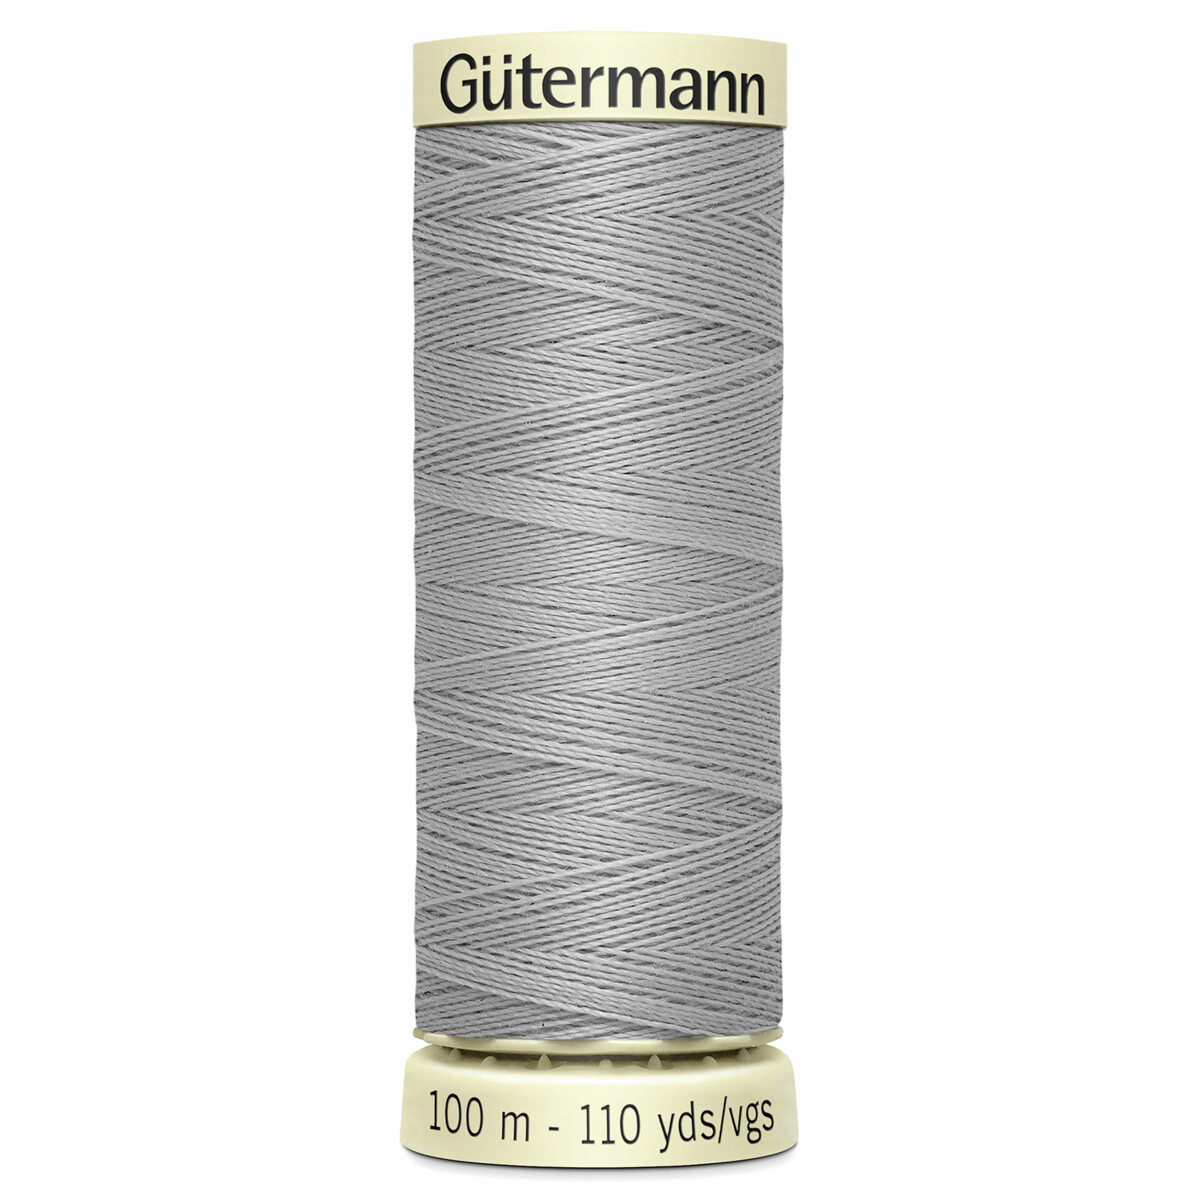 Gutermann Sew-All thread 38